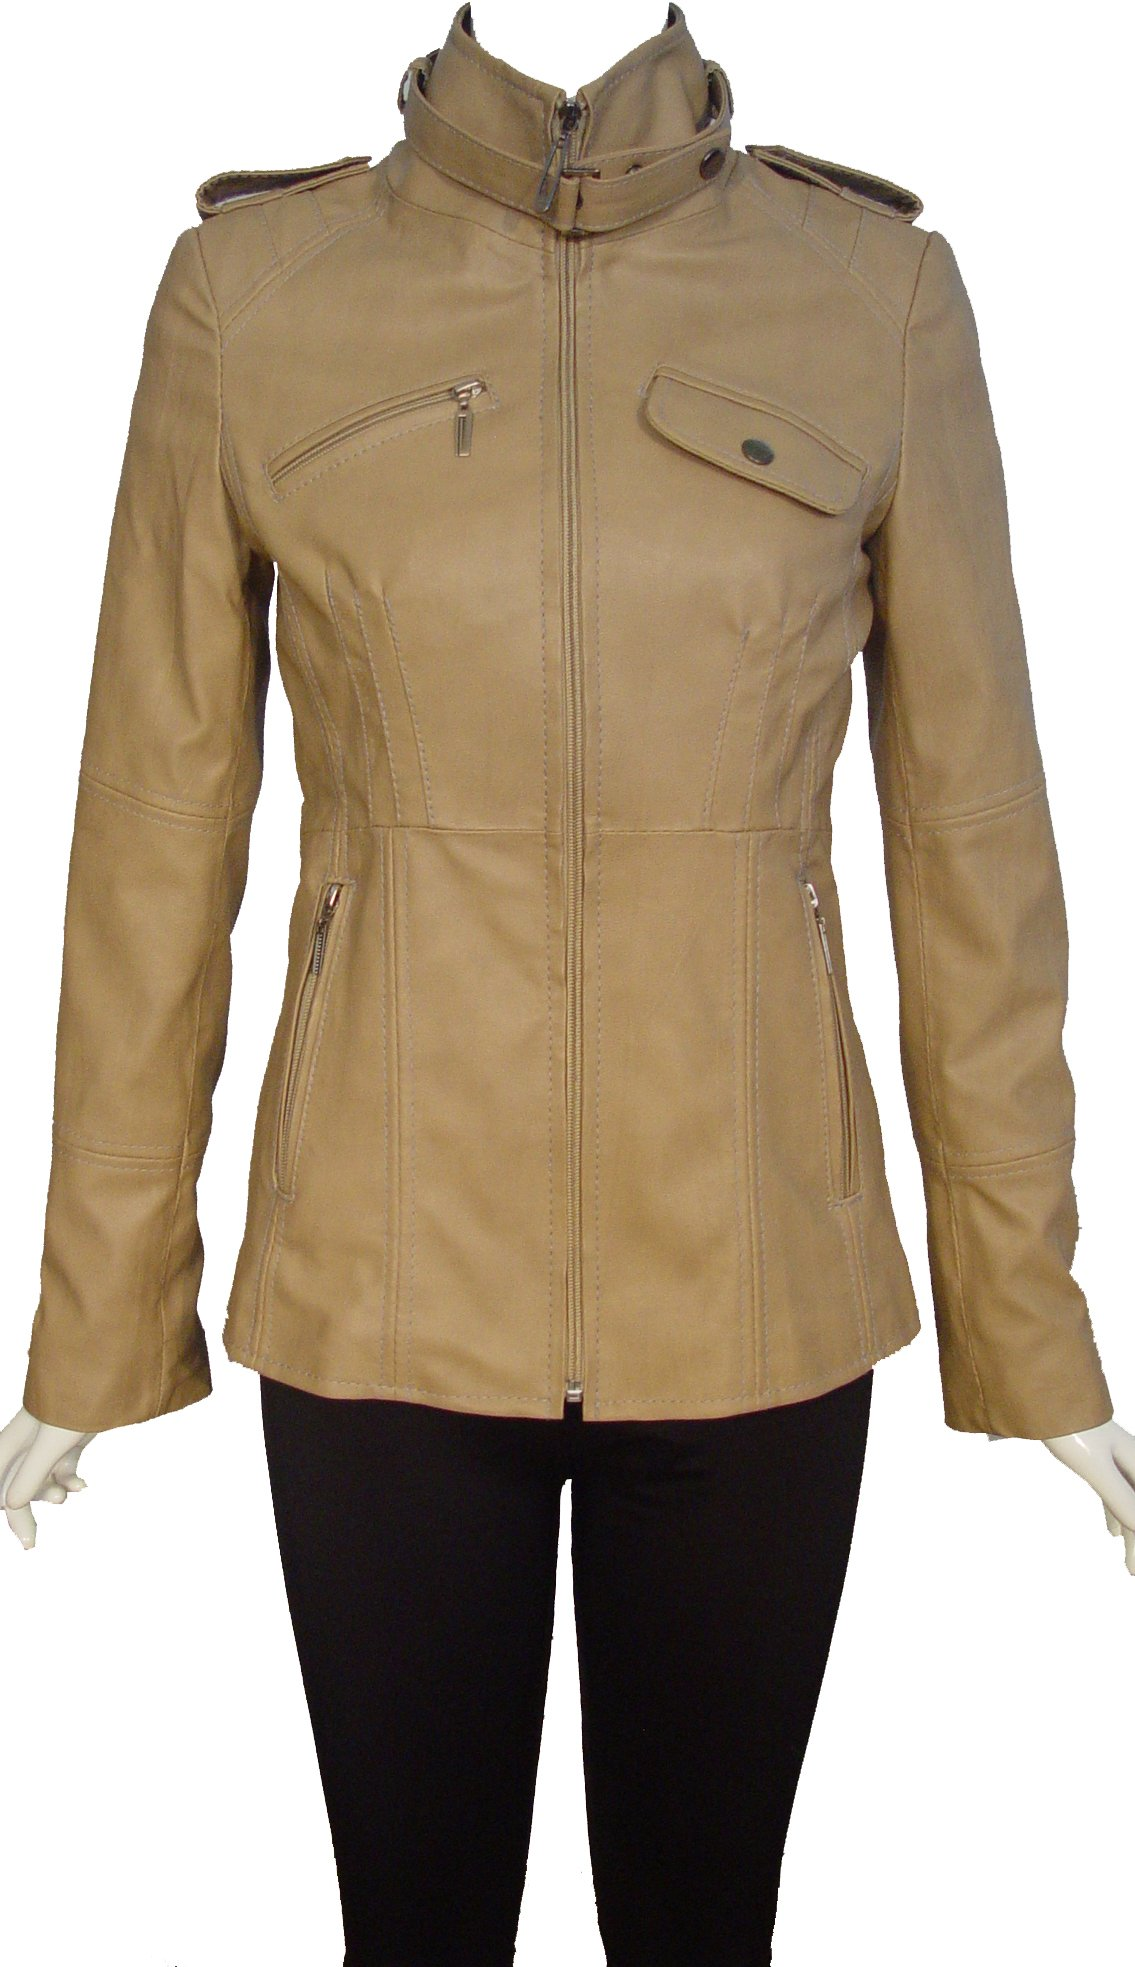 Nettailor 4205 Fine Leather Motorcycle Jackets Ladies Genuine Lambskin by NETTAILOR (Image #5)